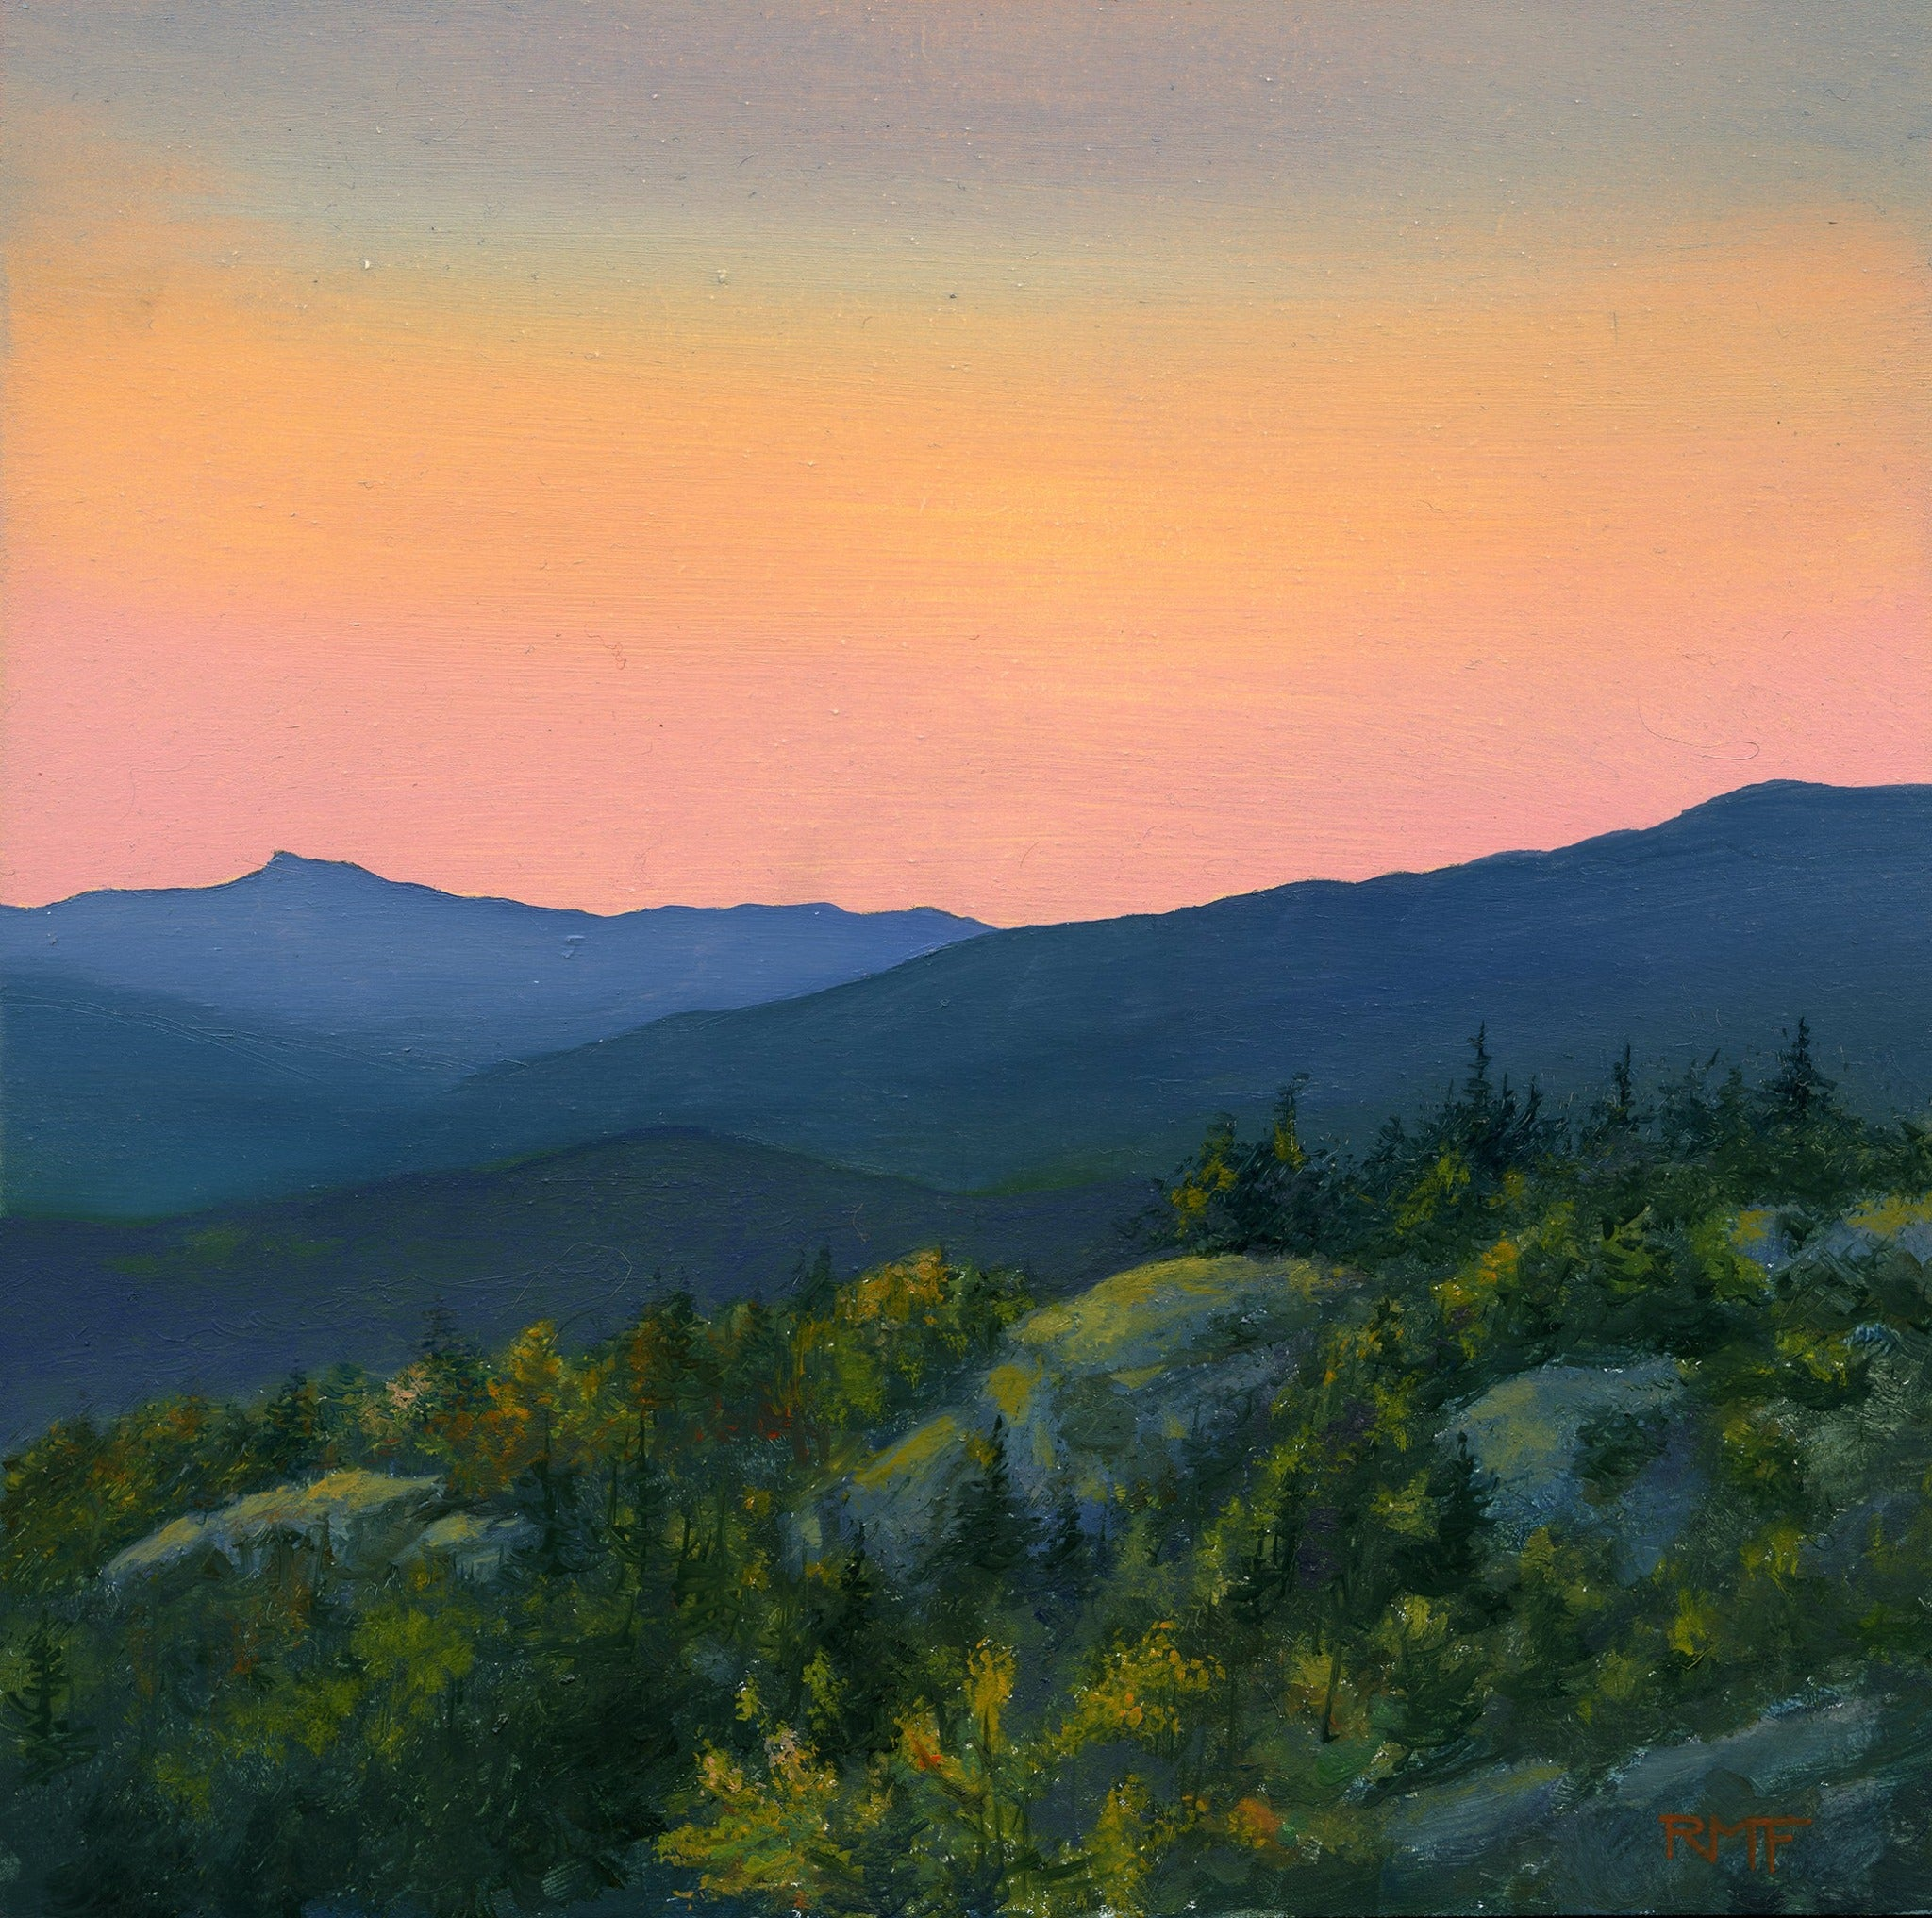 """Hunger Mountain Sunset"" is an 8 by 8 inch oil on panel painting by Rebecca M. Fullerton, depicting the view from Mount Hunger, Vermont, looking toward the distinctive profile of Camel's Hump in the mellow light of dusk."